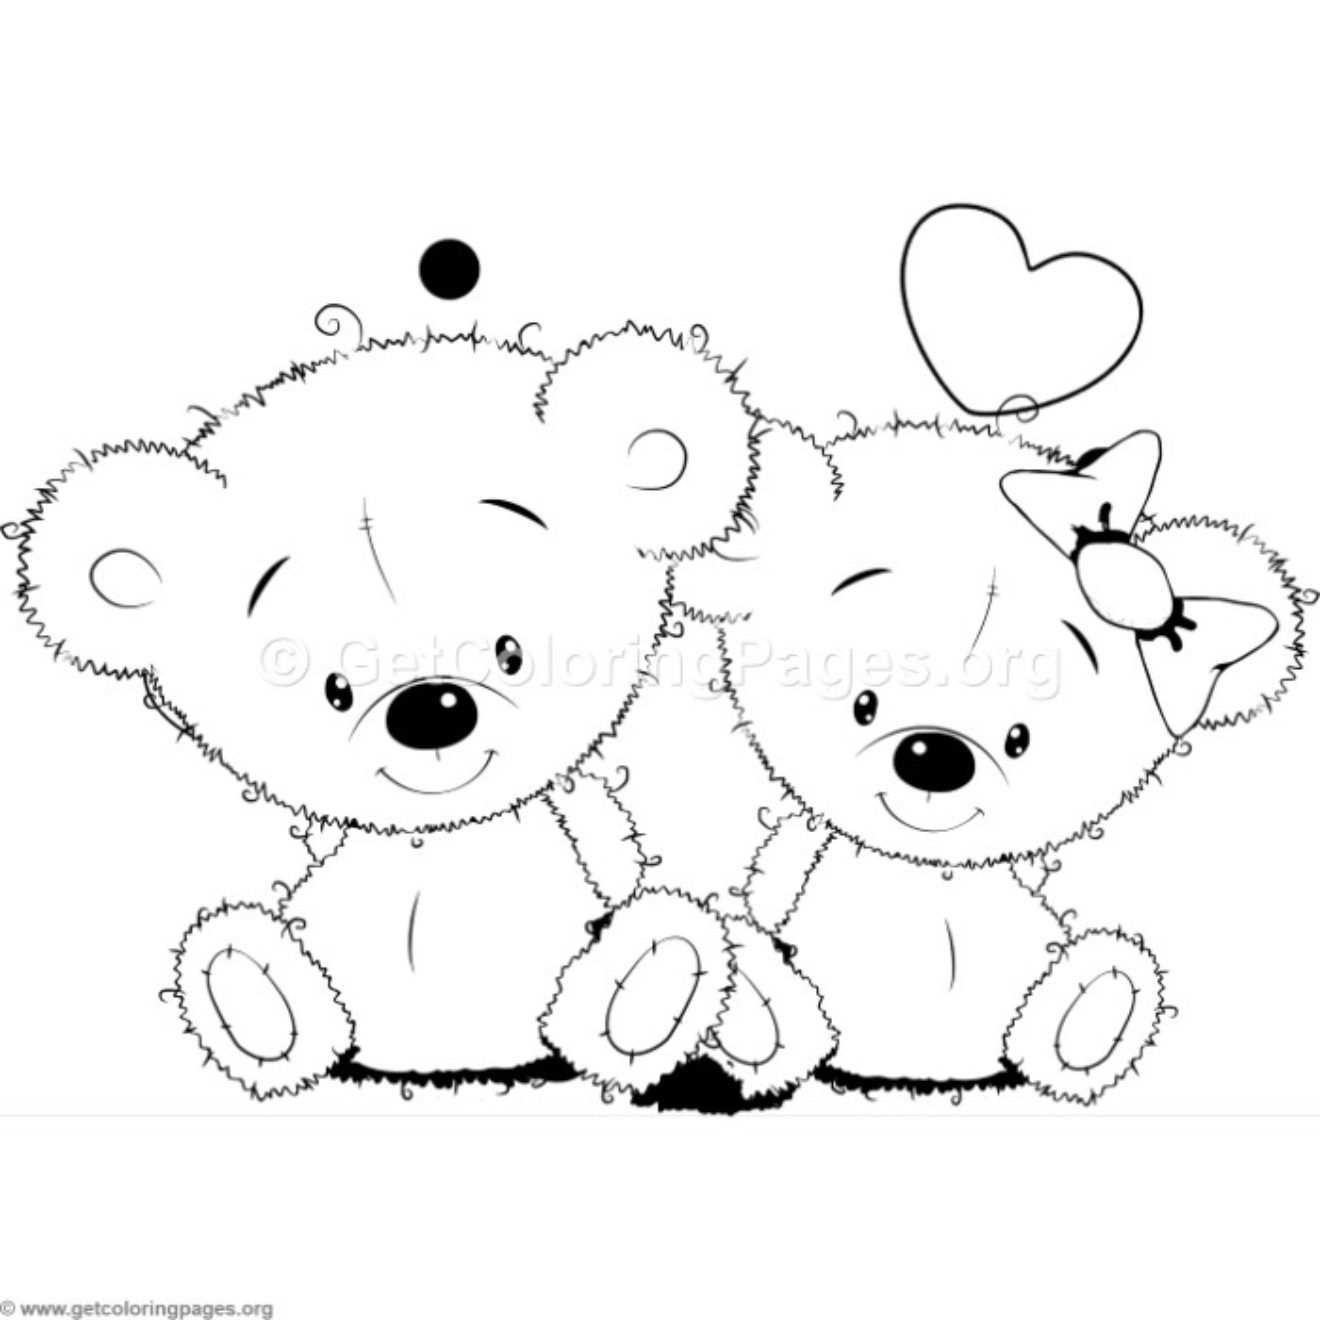 Cartoon Coloring Sheets Page 6 Getcoloringpages Org Met